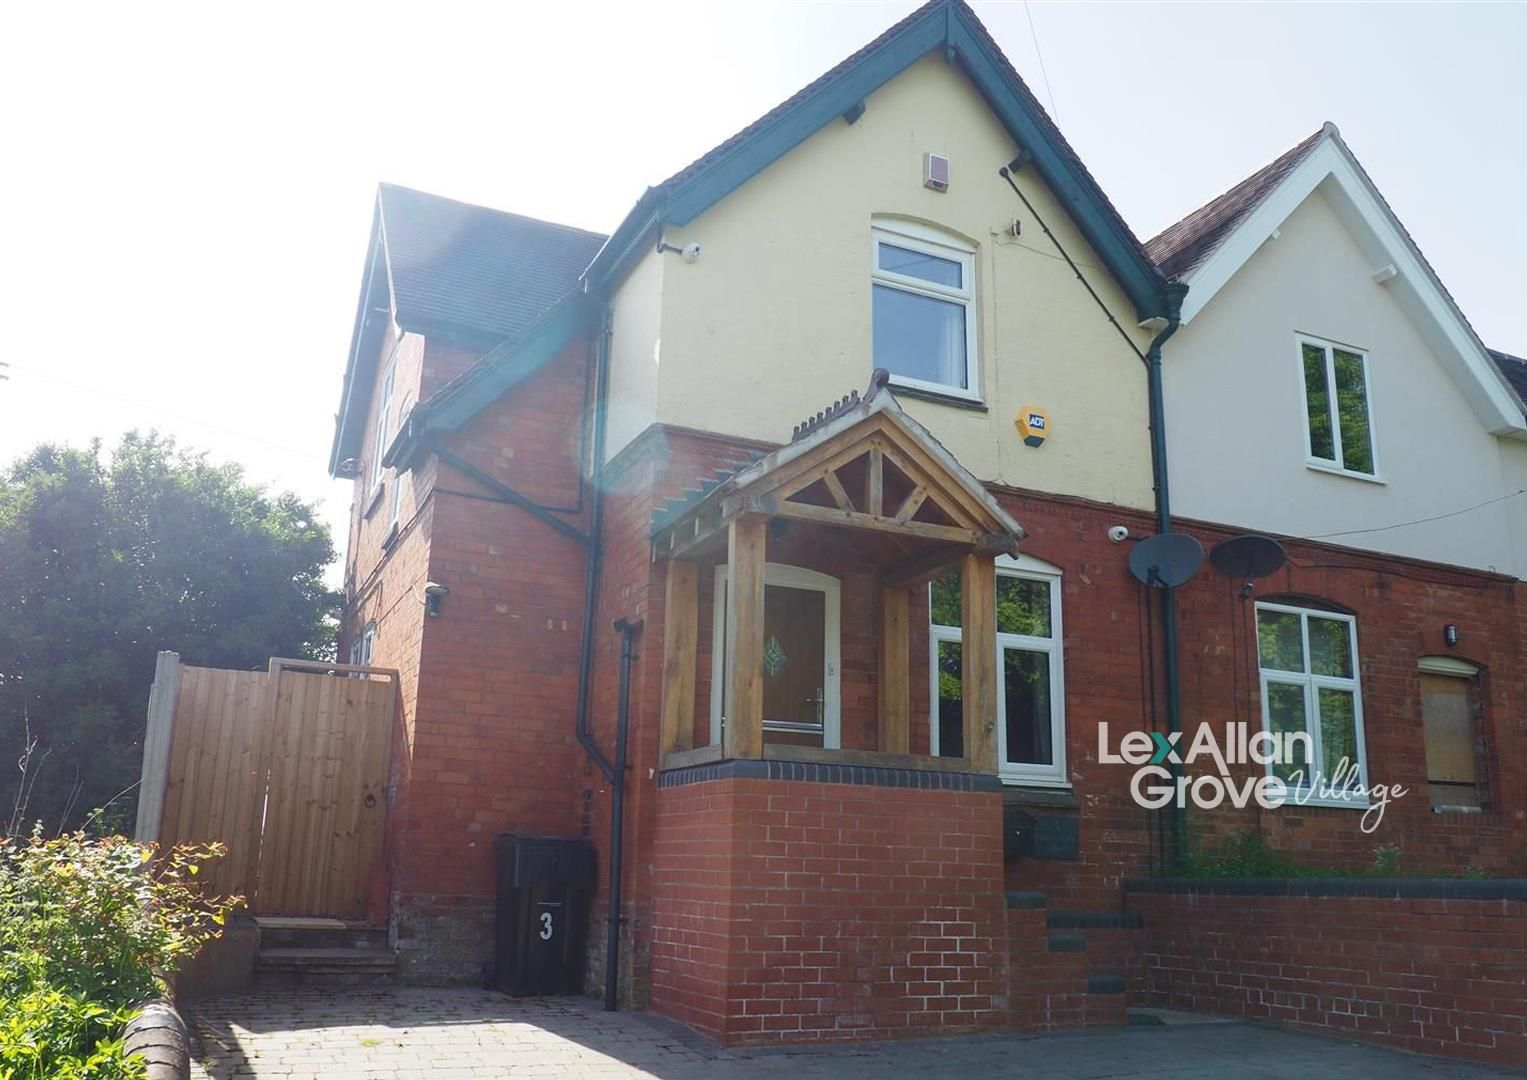 2 bed semi-detached for sale in Clent, DY9